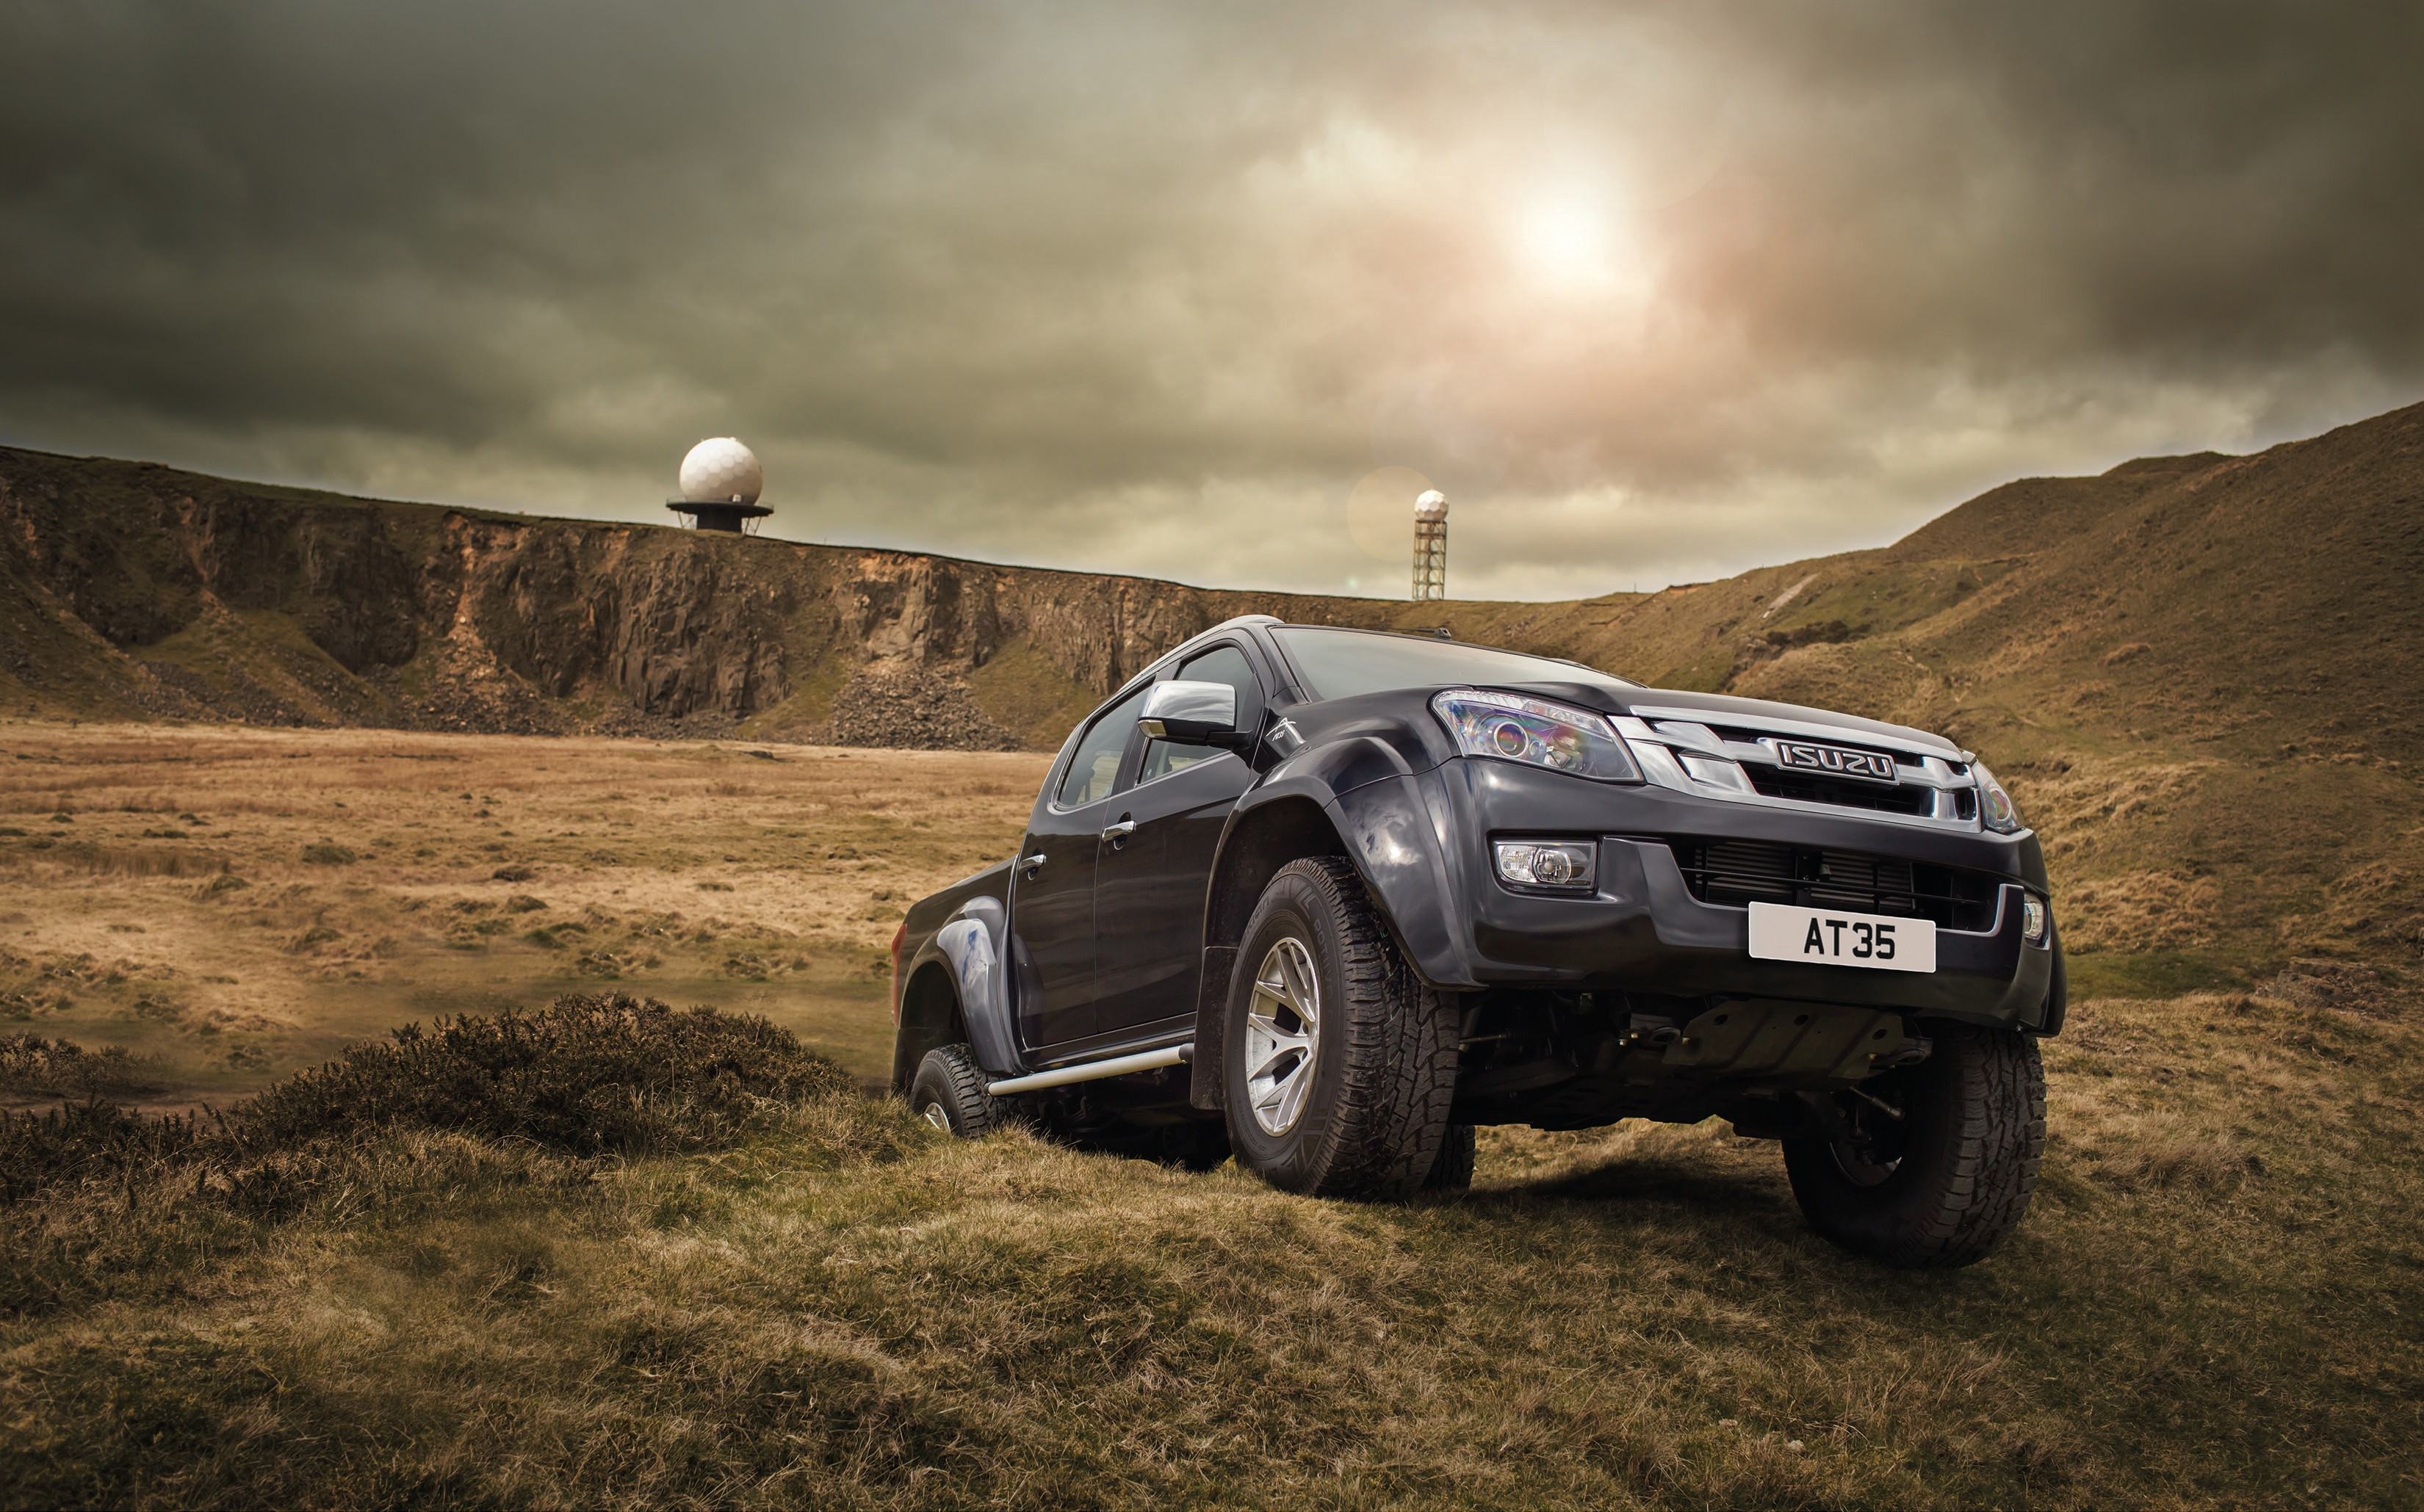 Wallpaper Arctic Trucks, Isuzu D-Max AT35, Truck, Cars ...